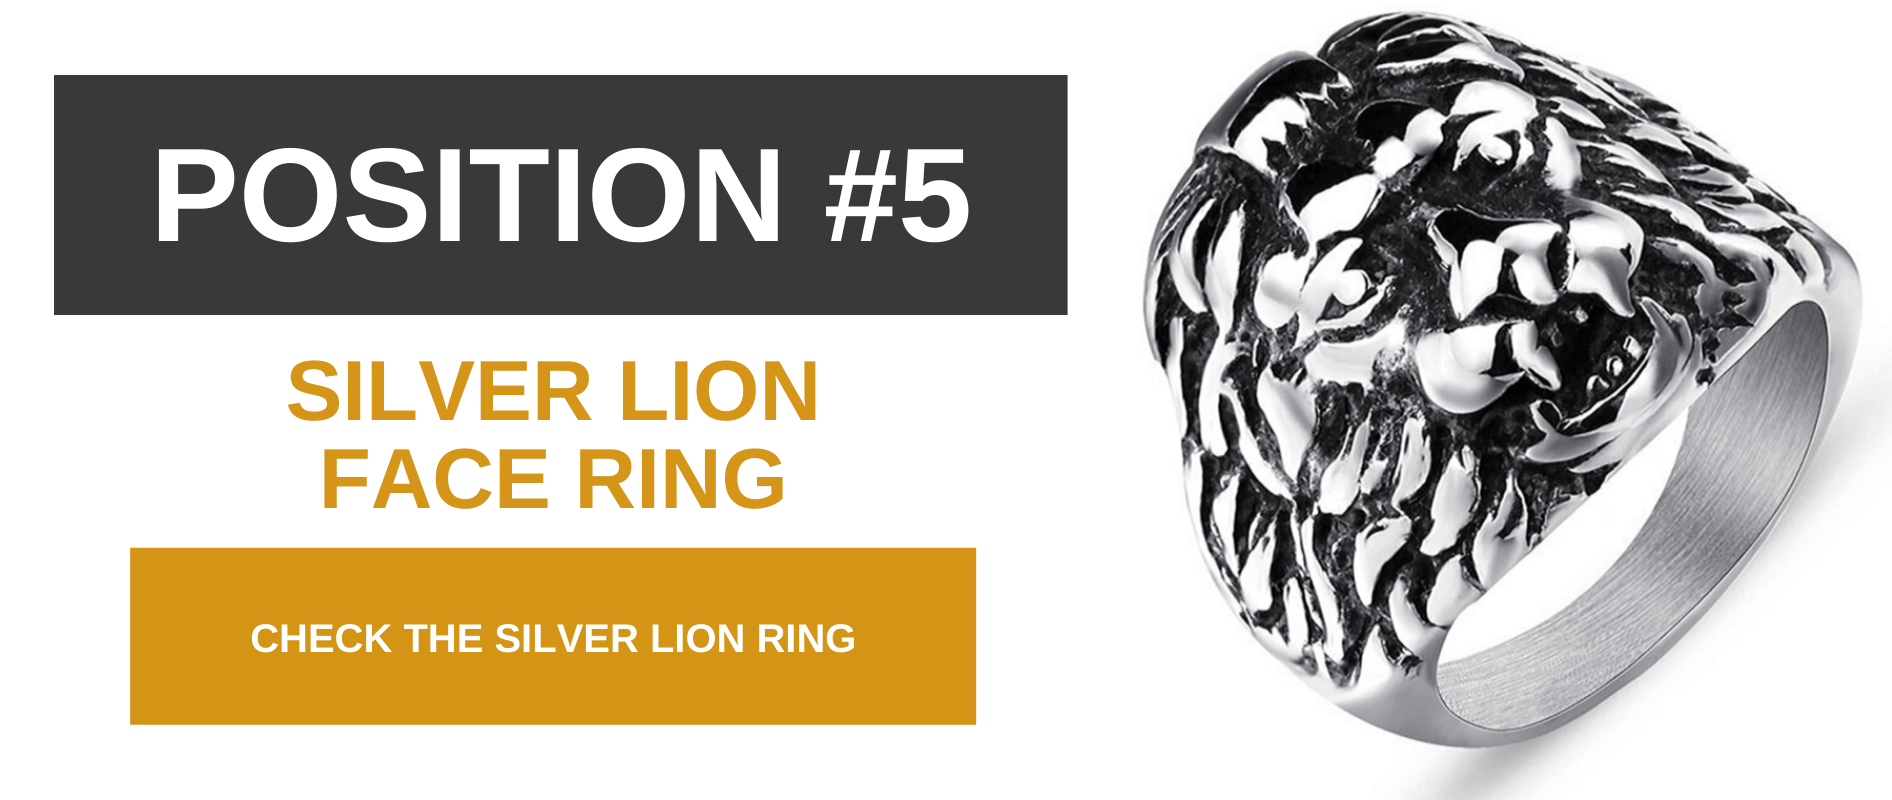 Silver lion face ring.